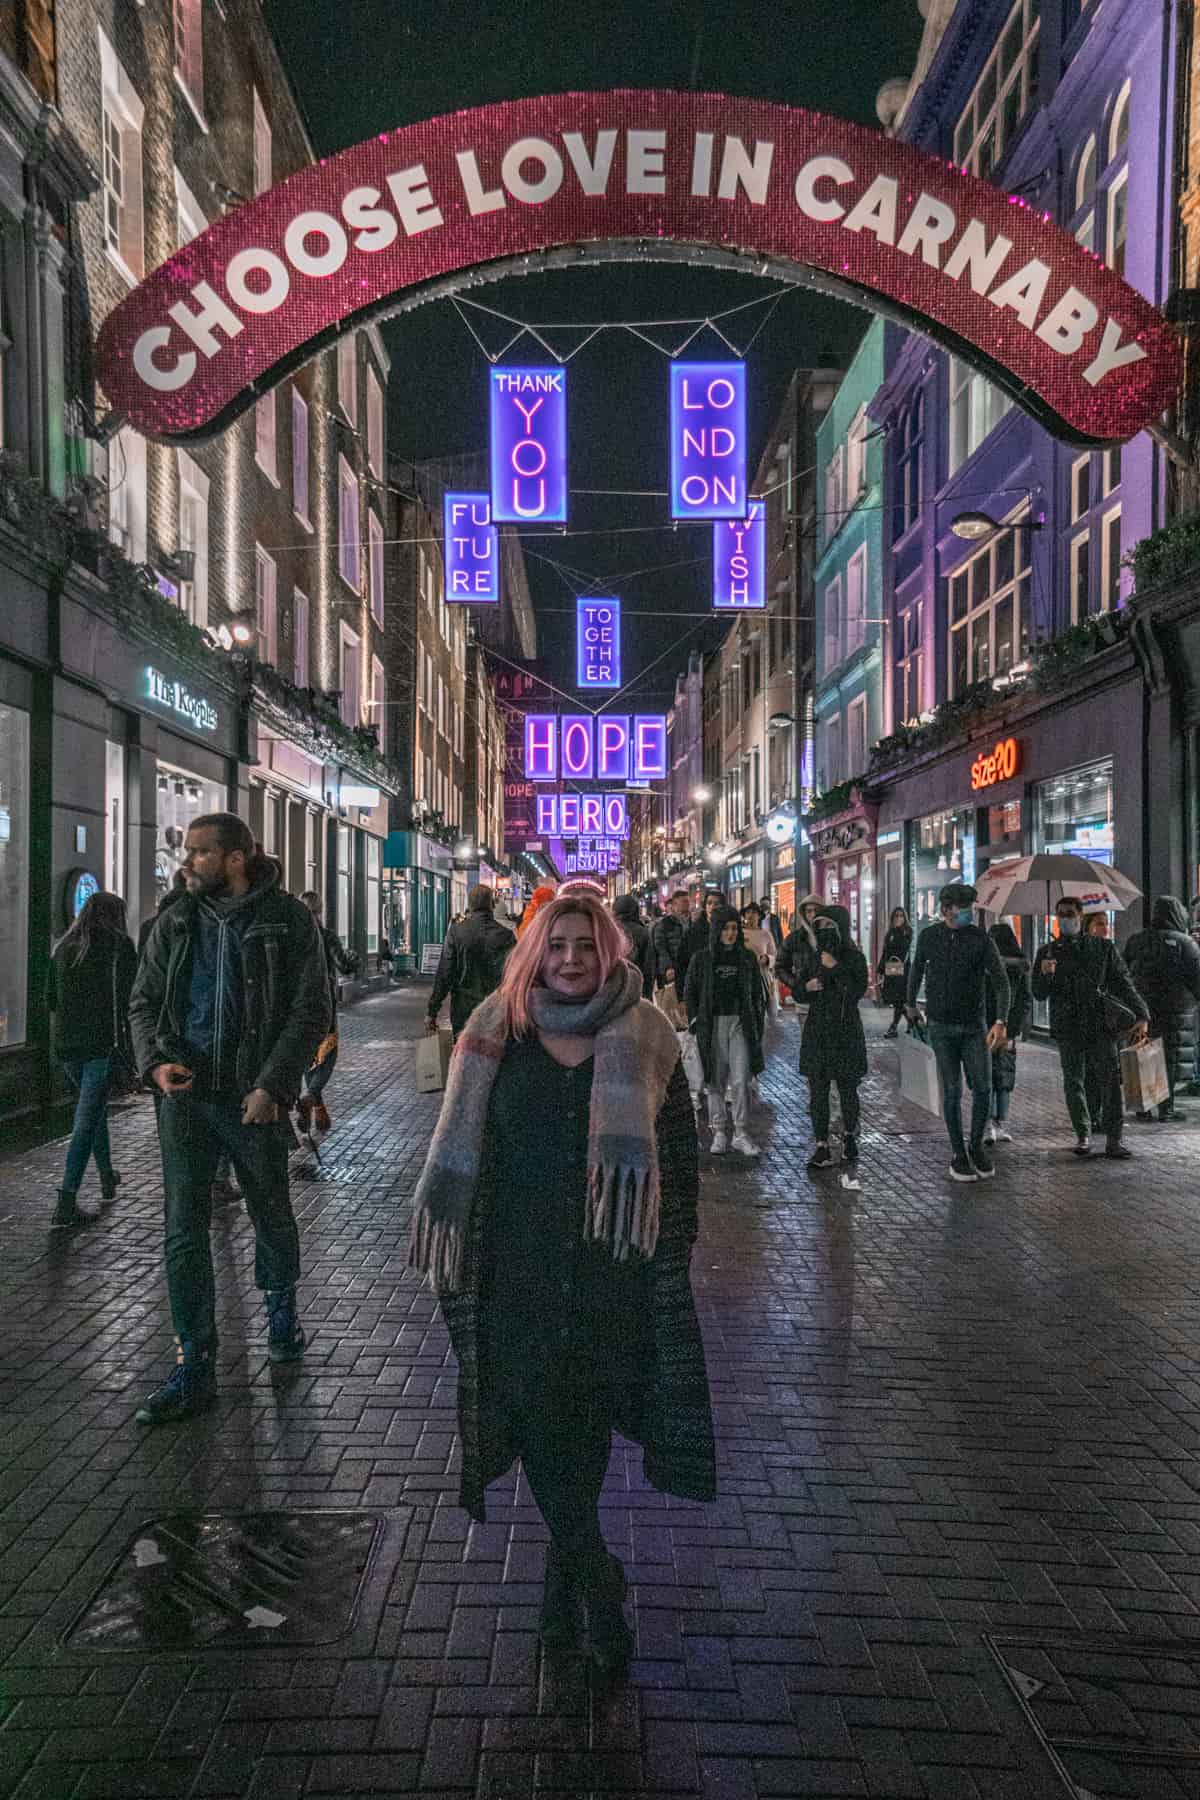 Kat standing in front of the choose love in Carnaby Christmas lights